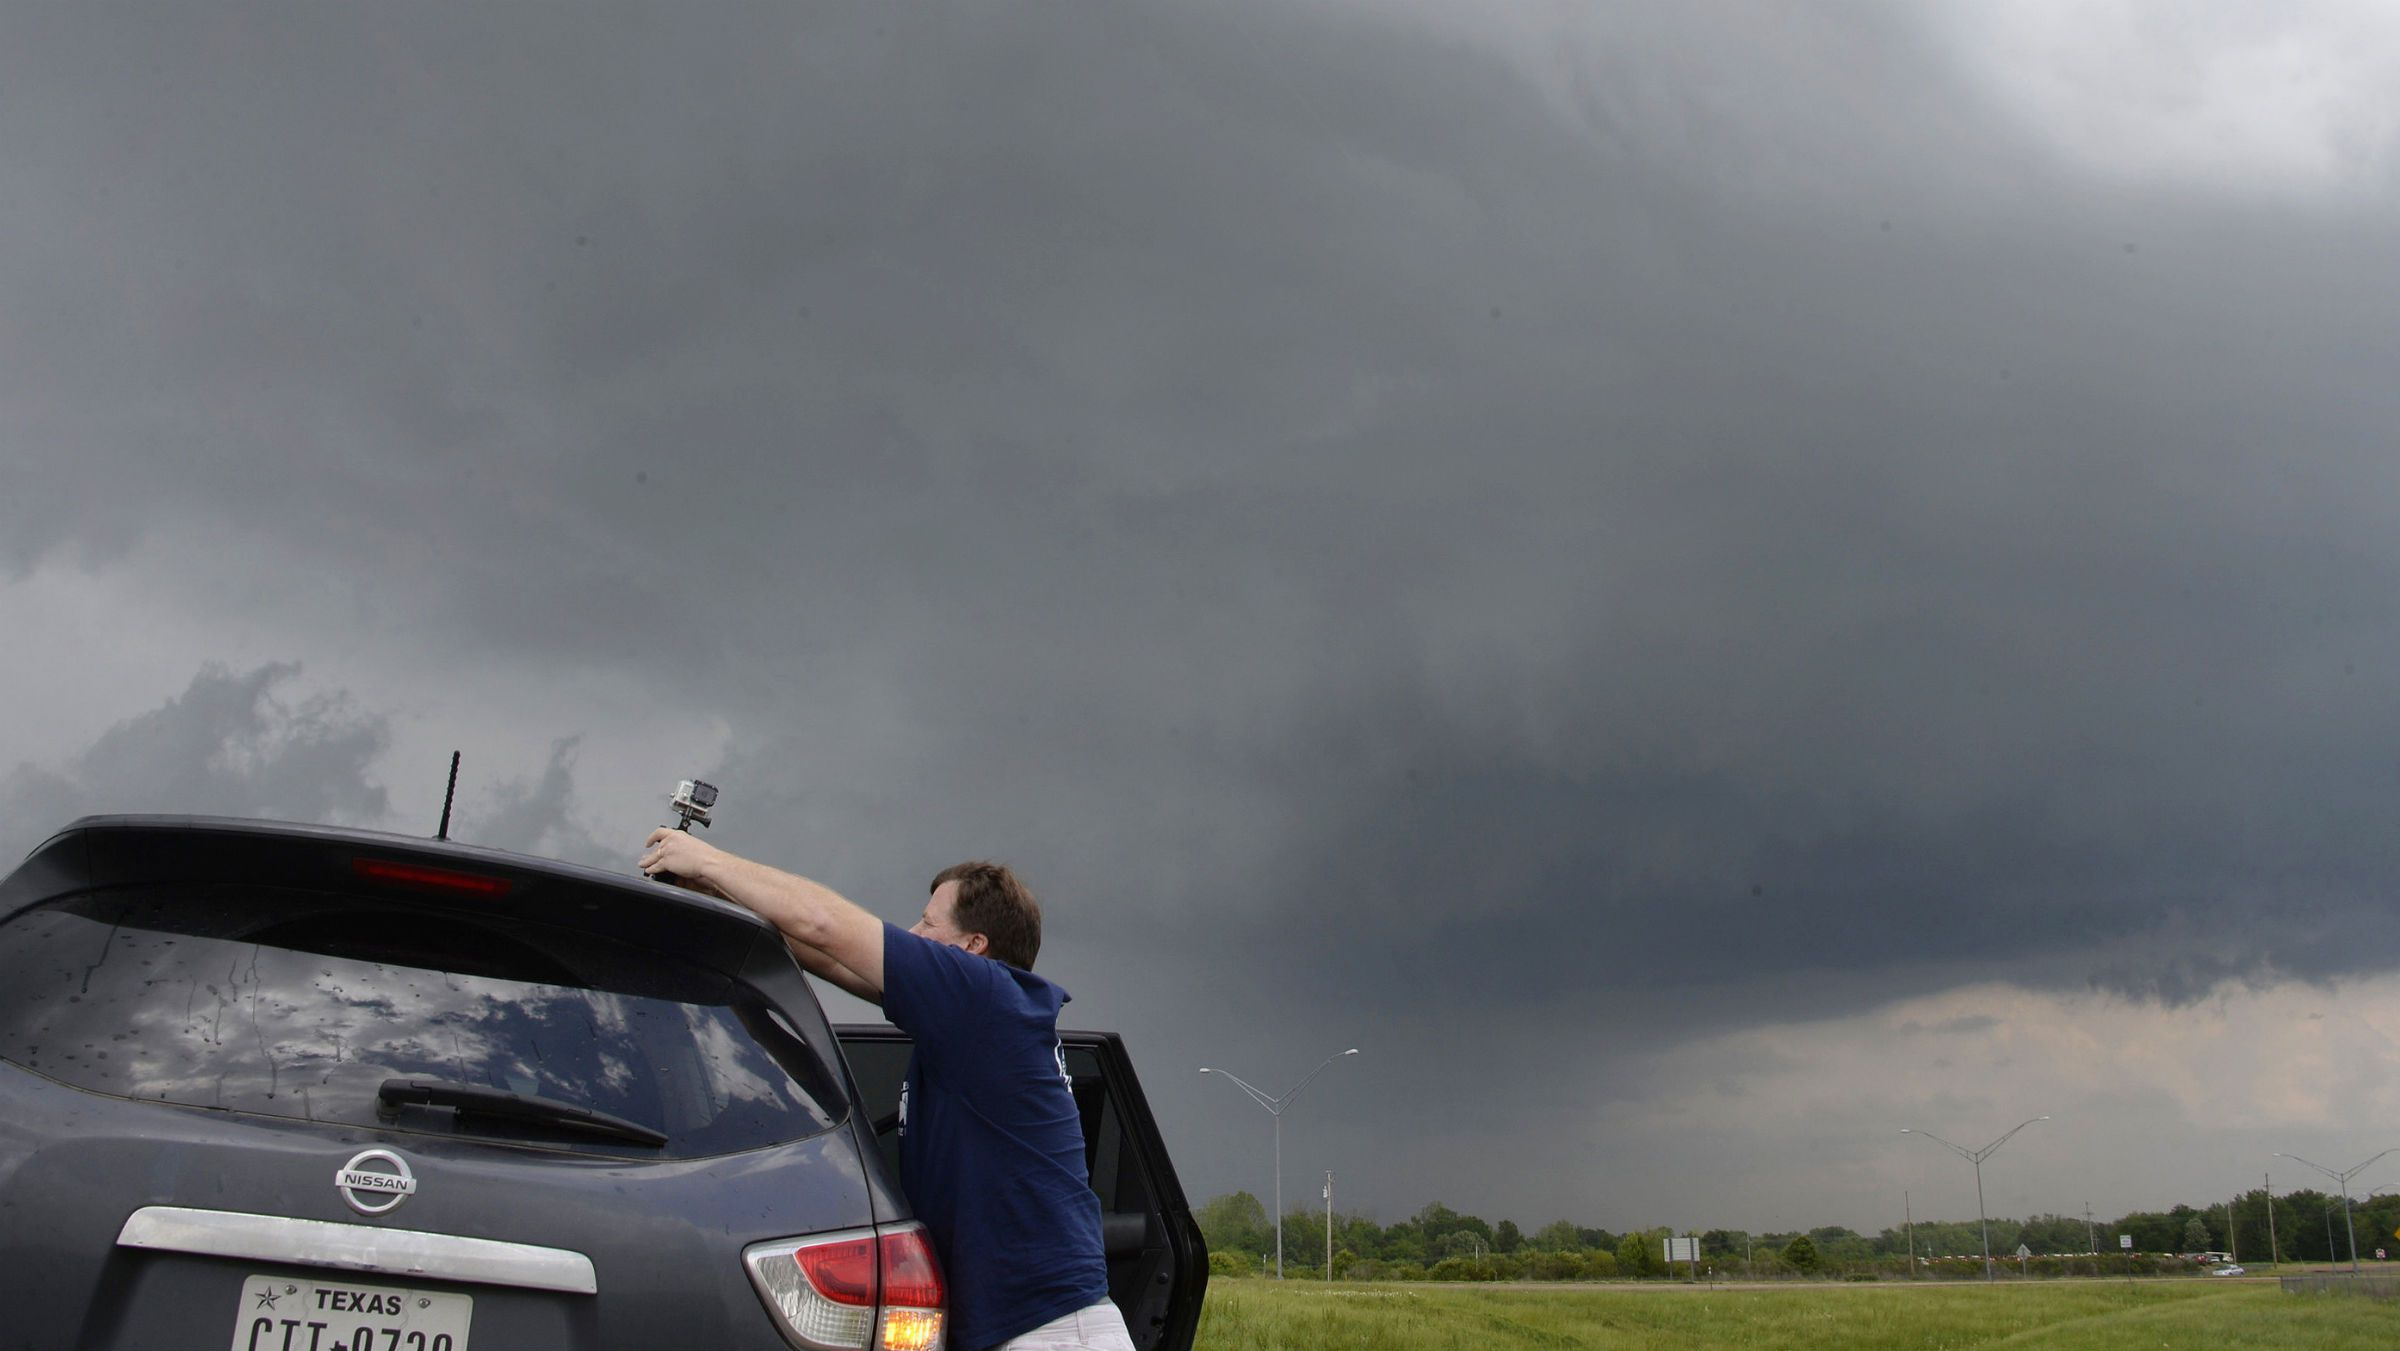 Storm chaser with GoPro